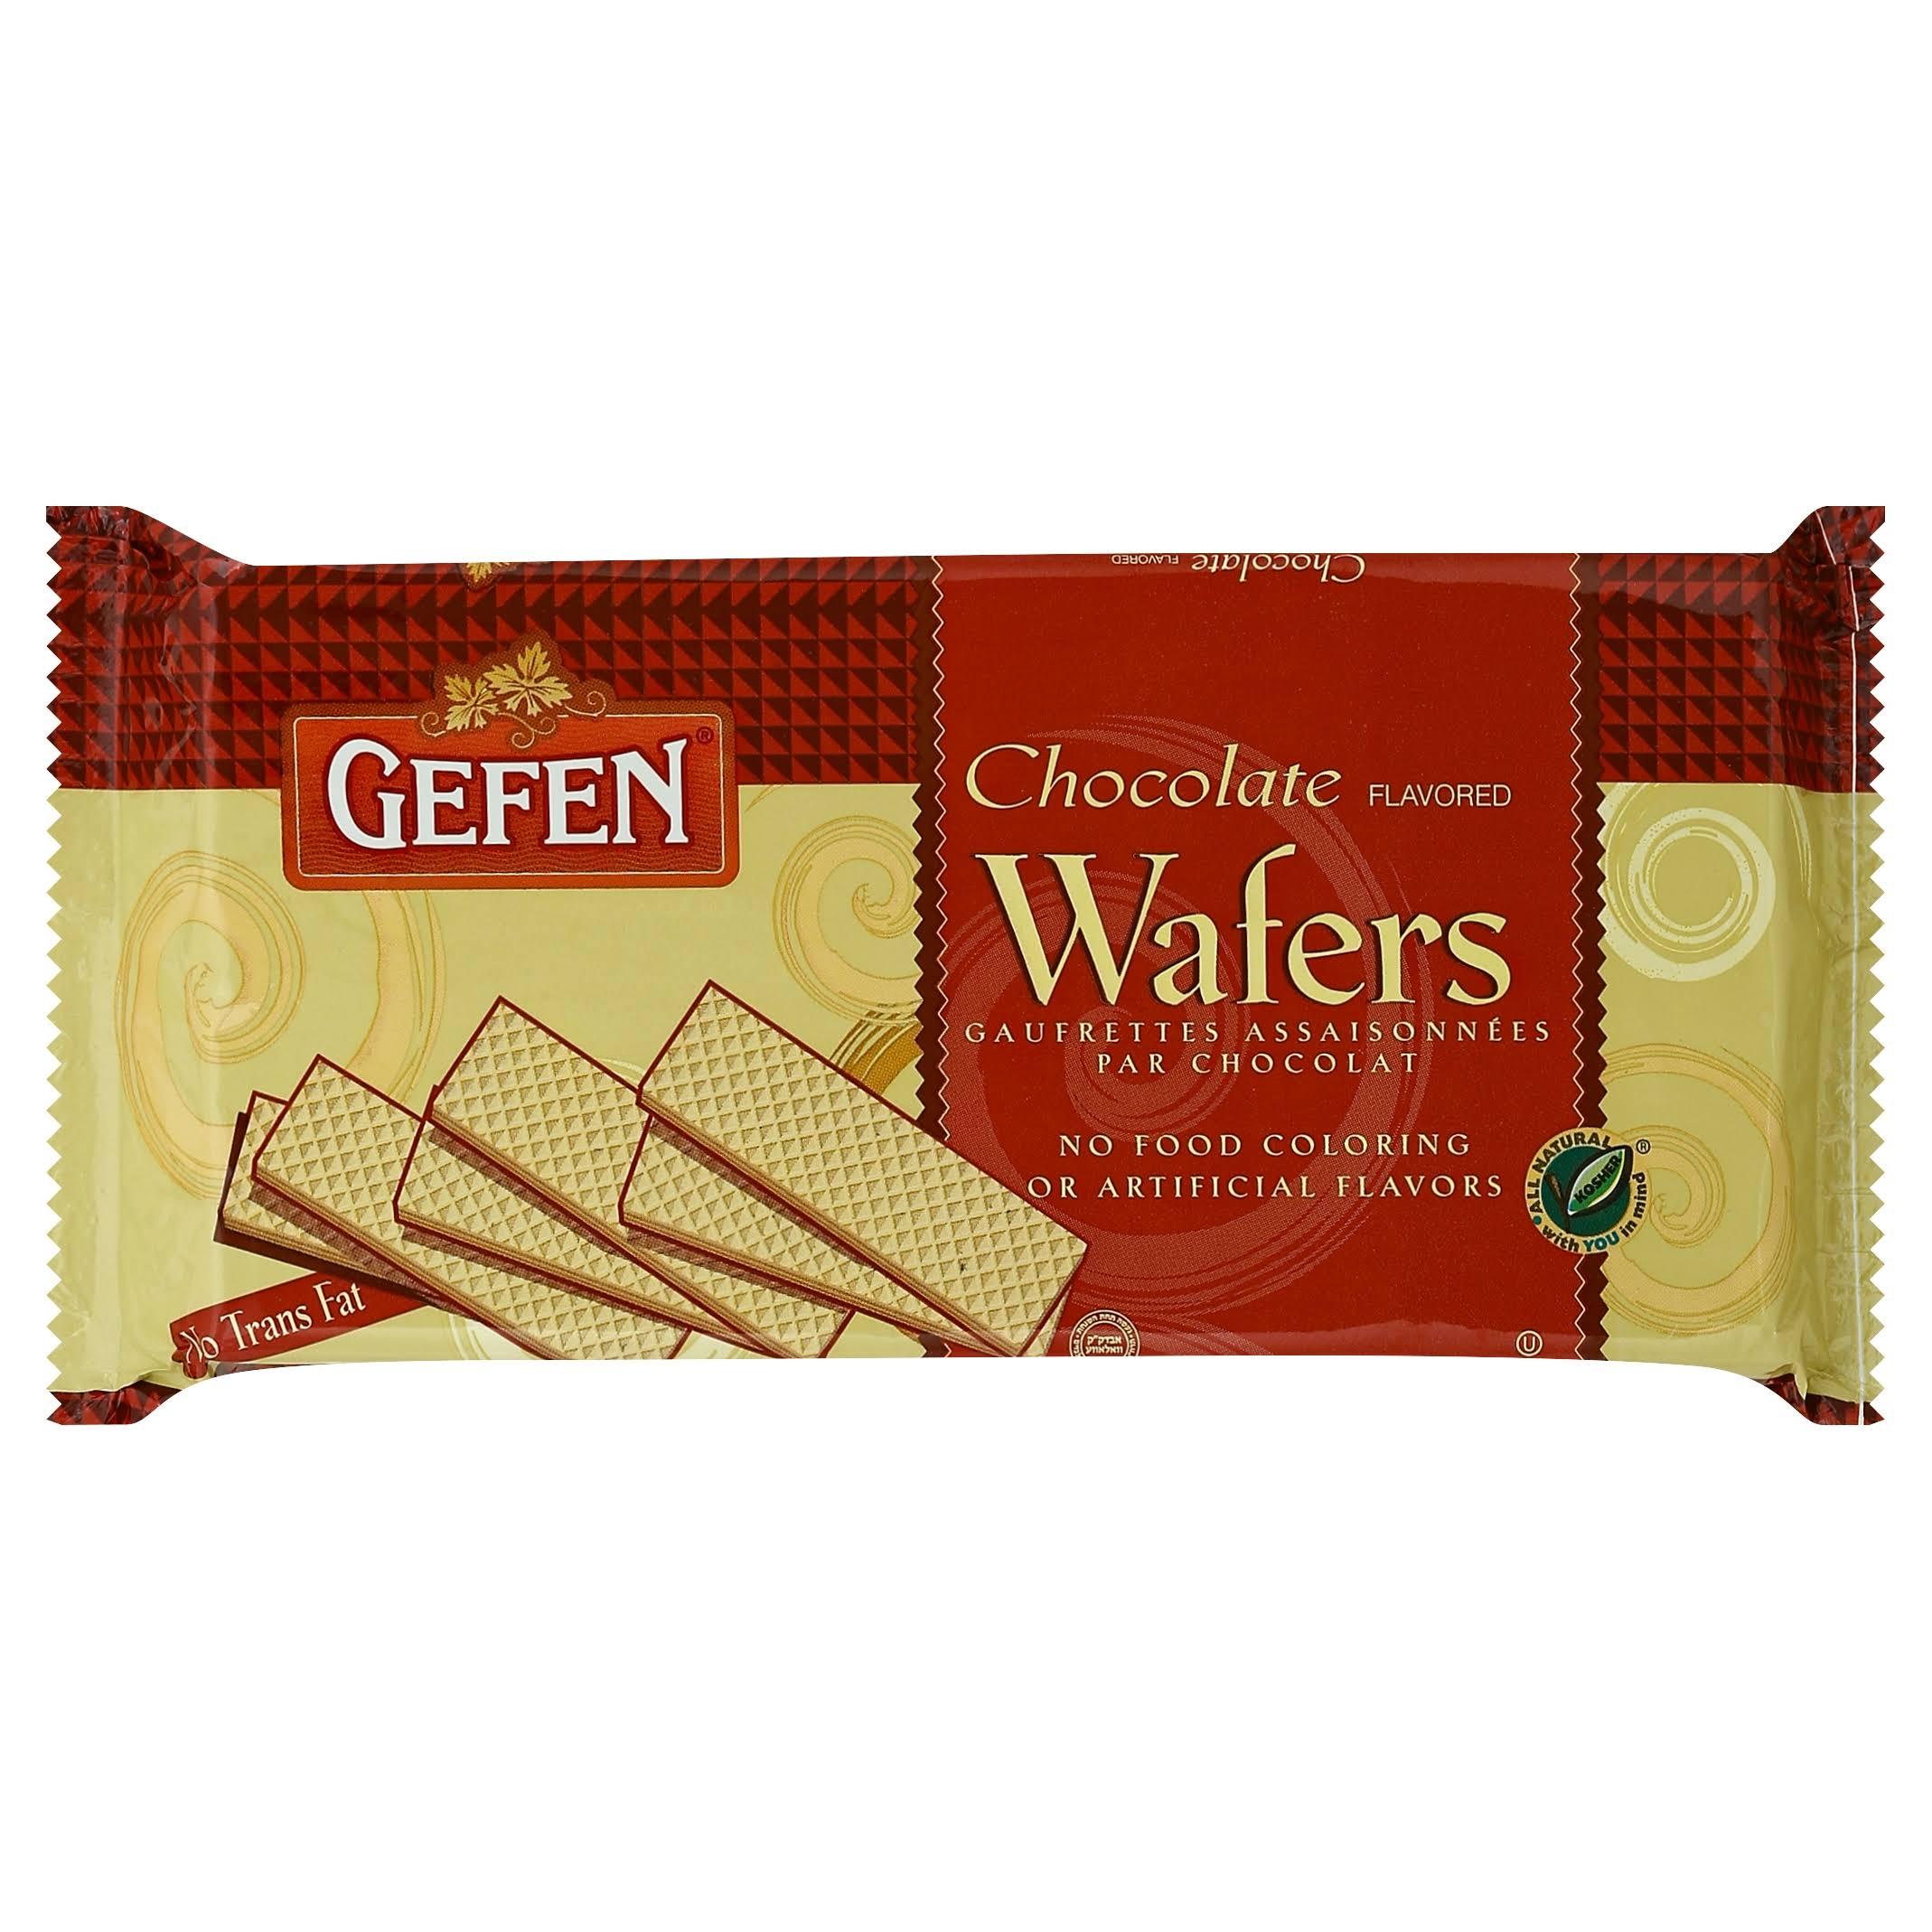 Gefen Wafers, Chocolate Flavored - 14.1 oz